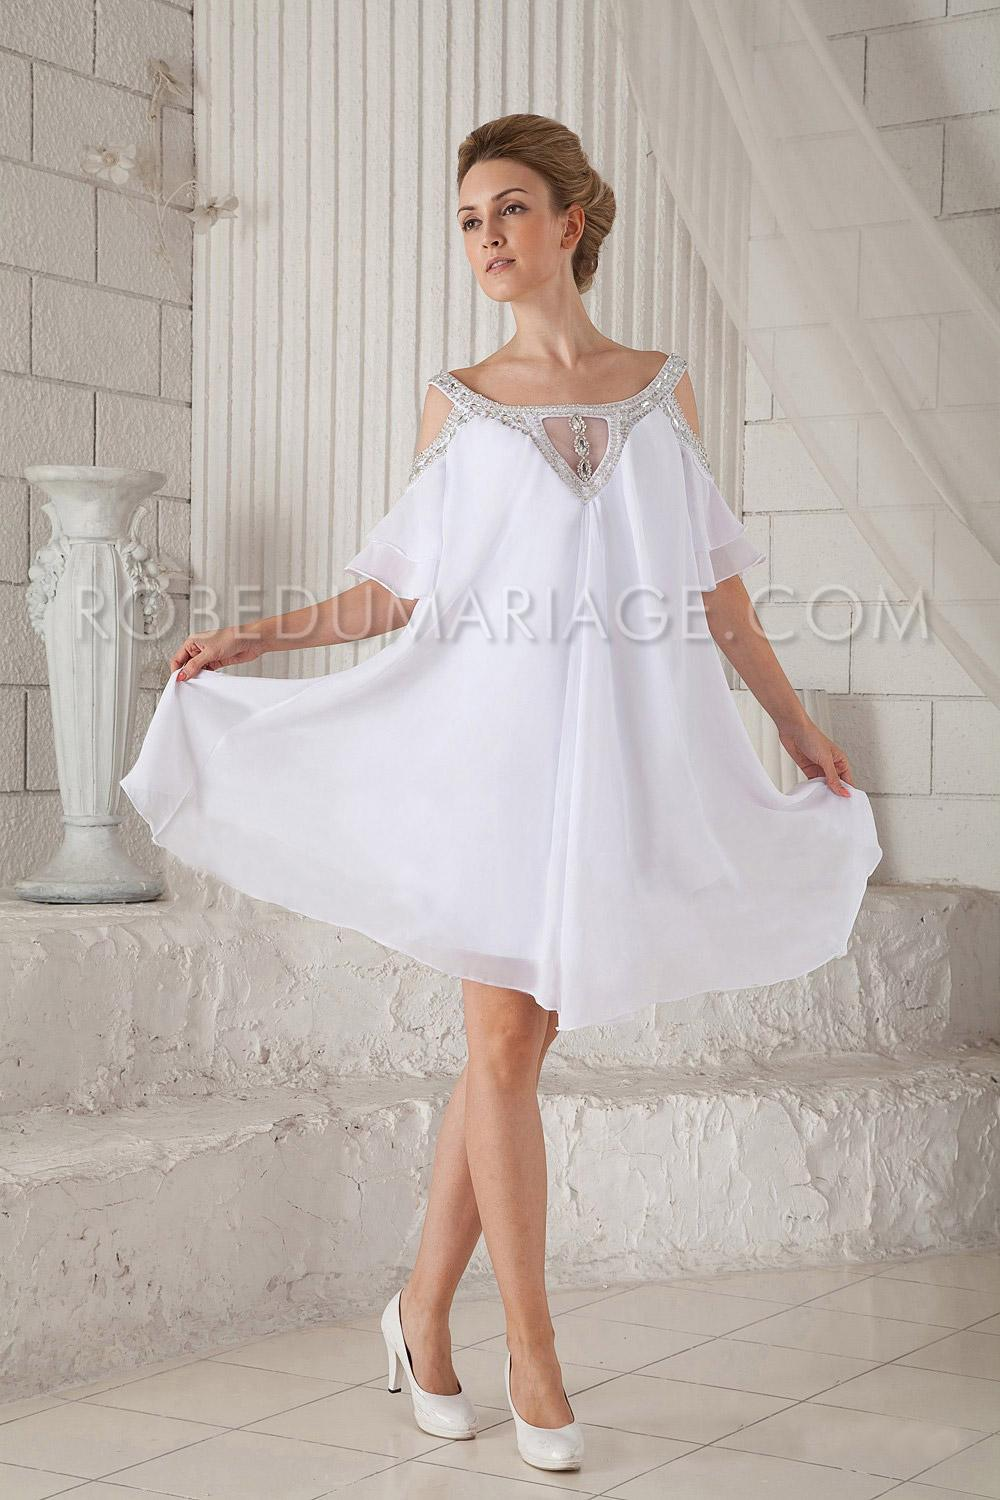 Robe soiree grande taille femme pas cher